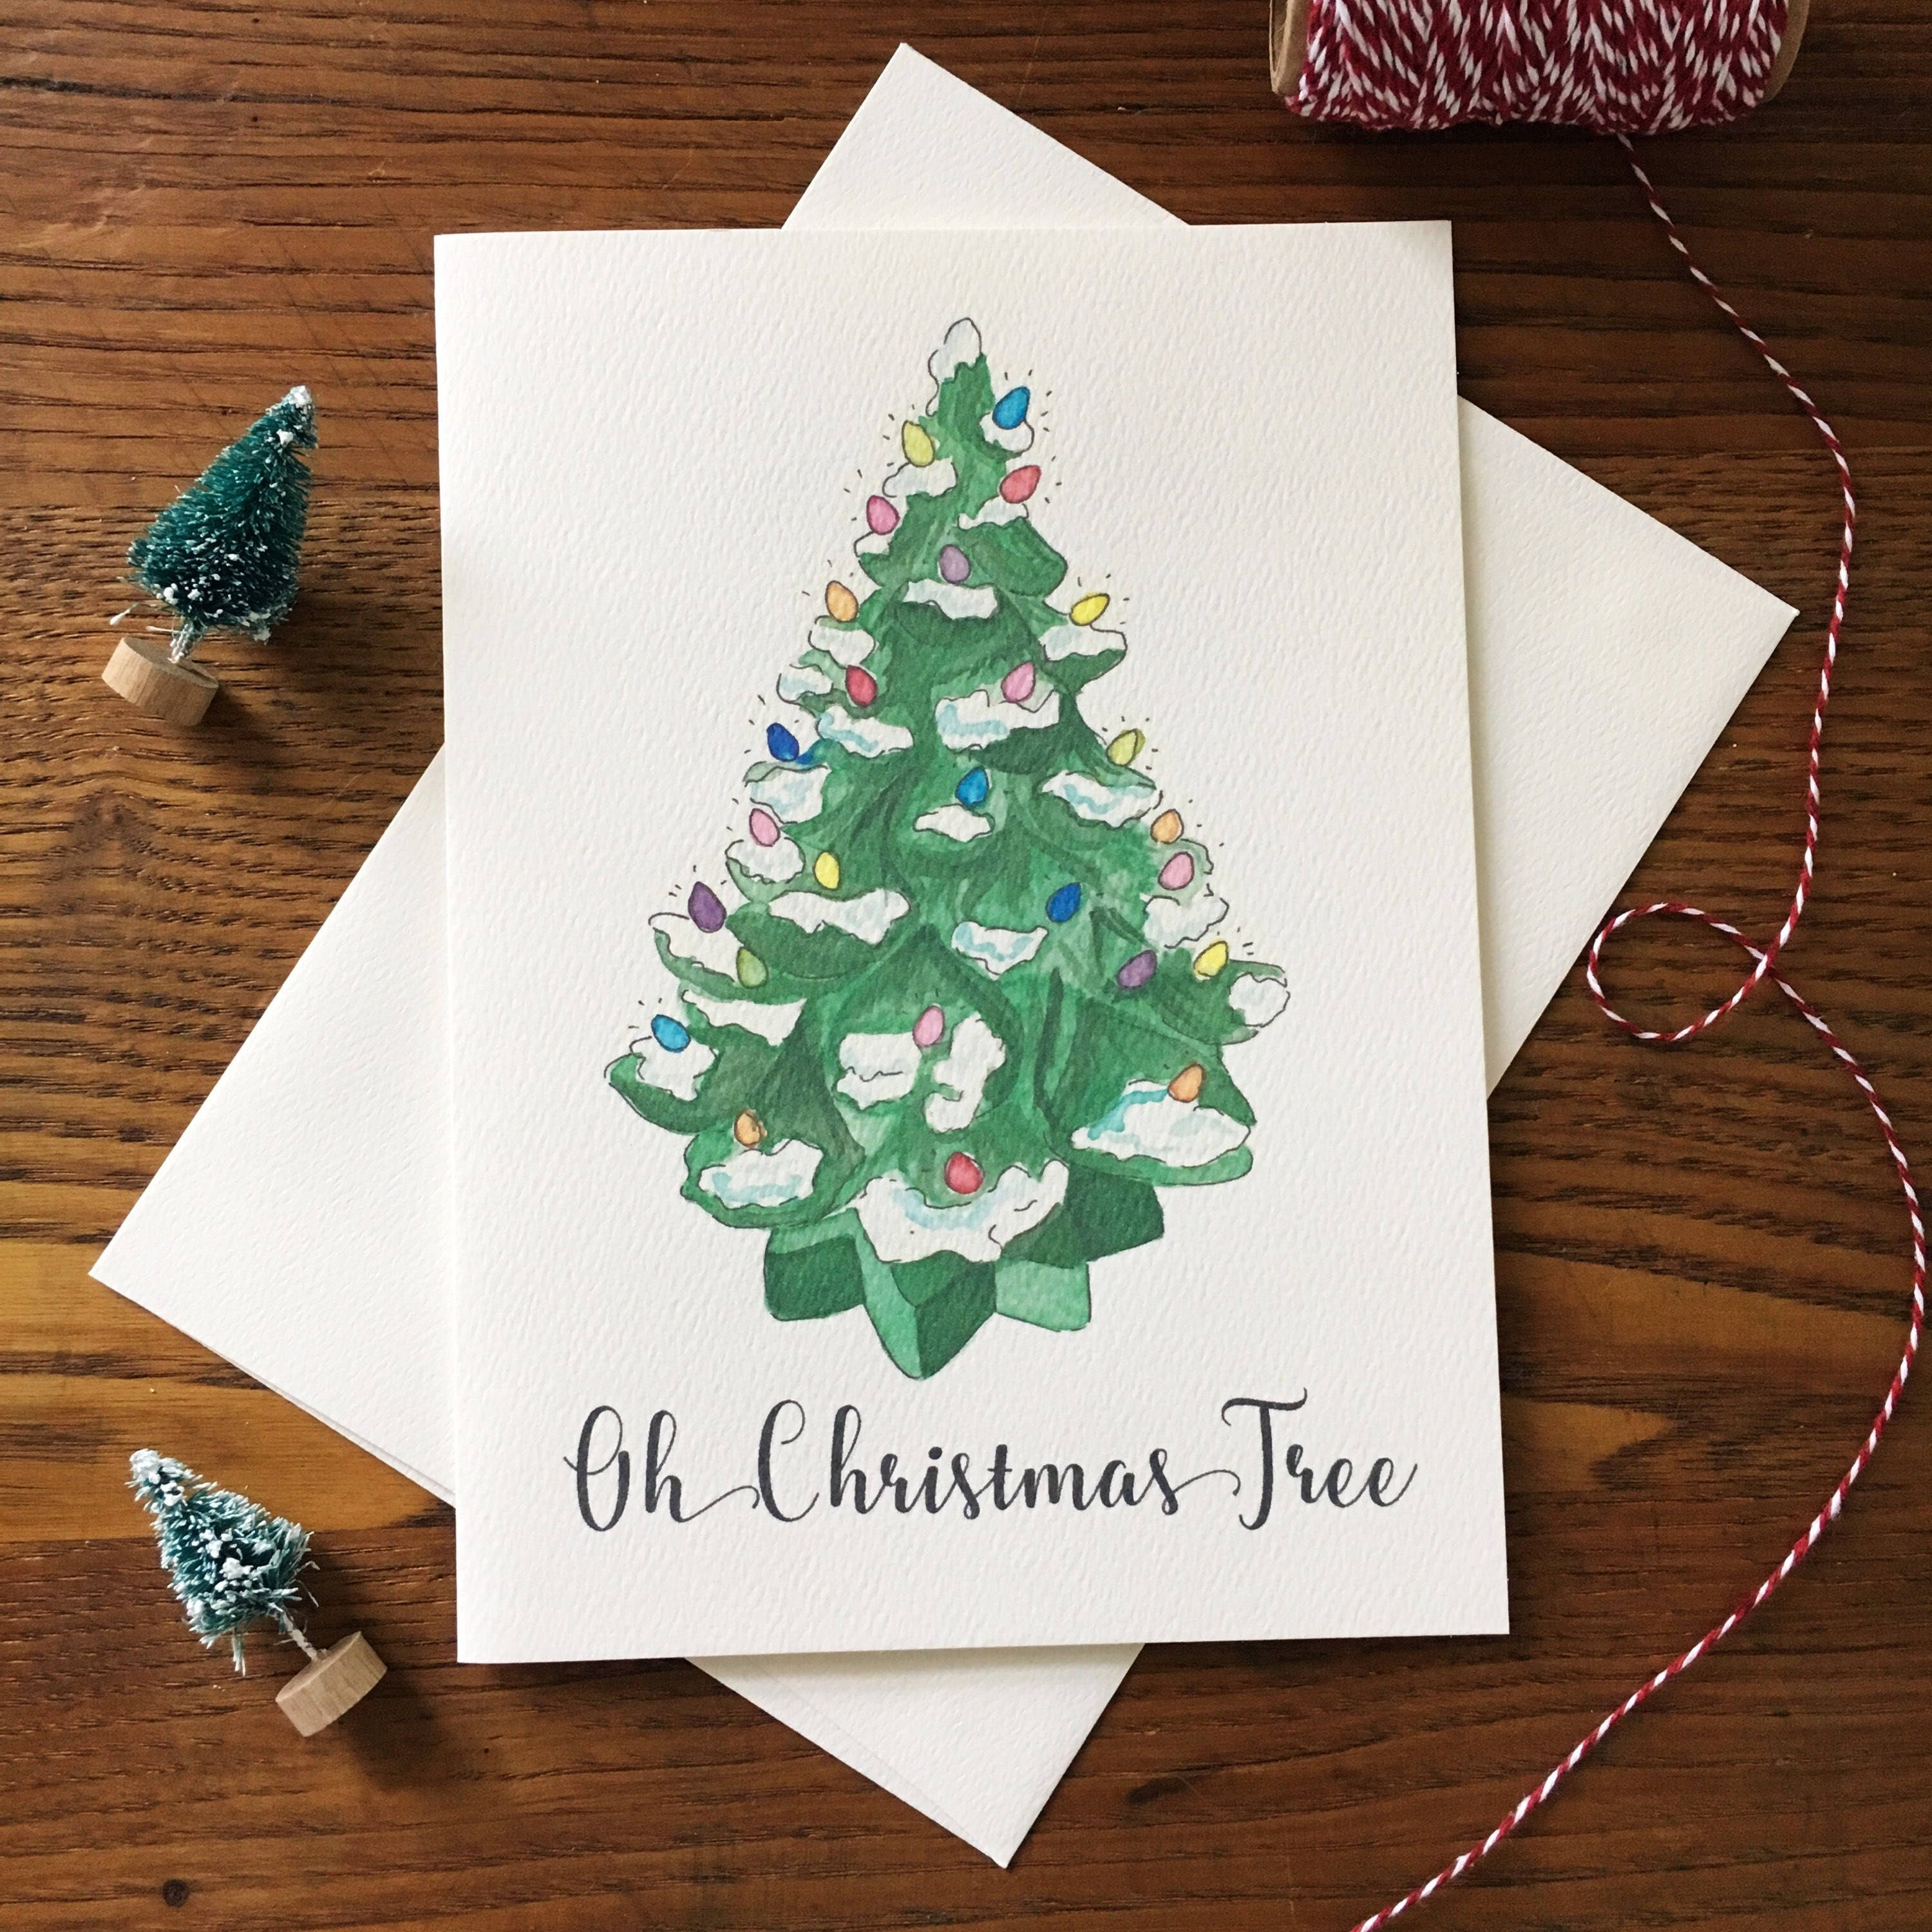 Christmas Tree Card. Vintage Inspired Card. Oh Christmas Tree. | Etsy